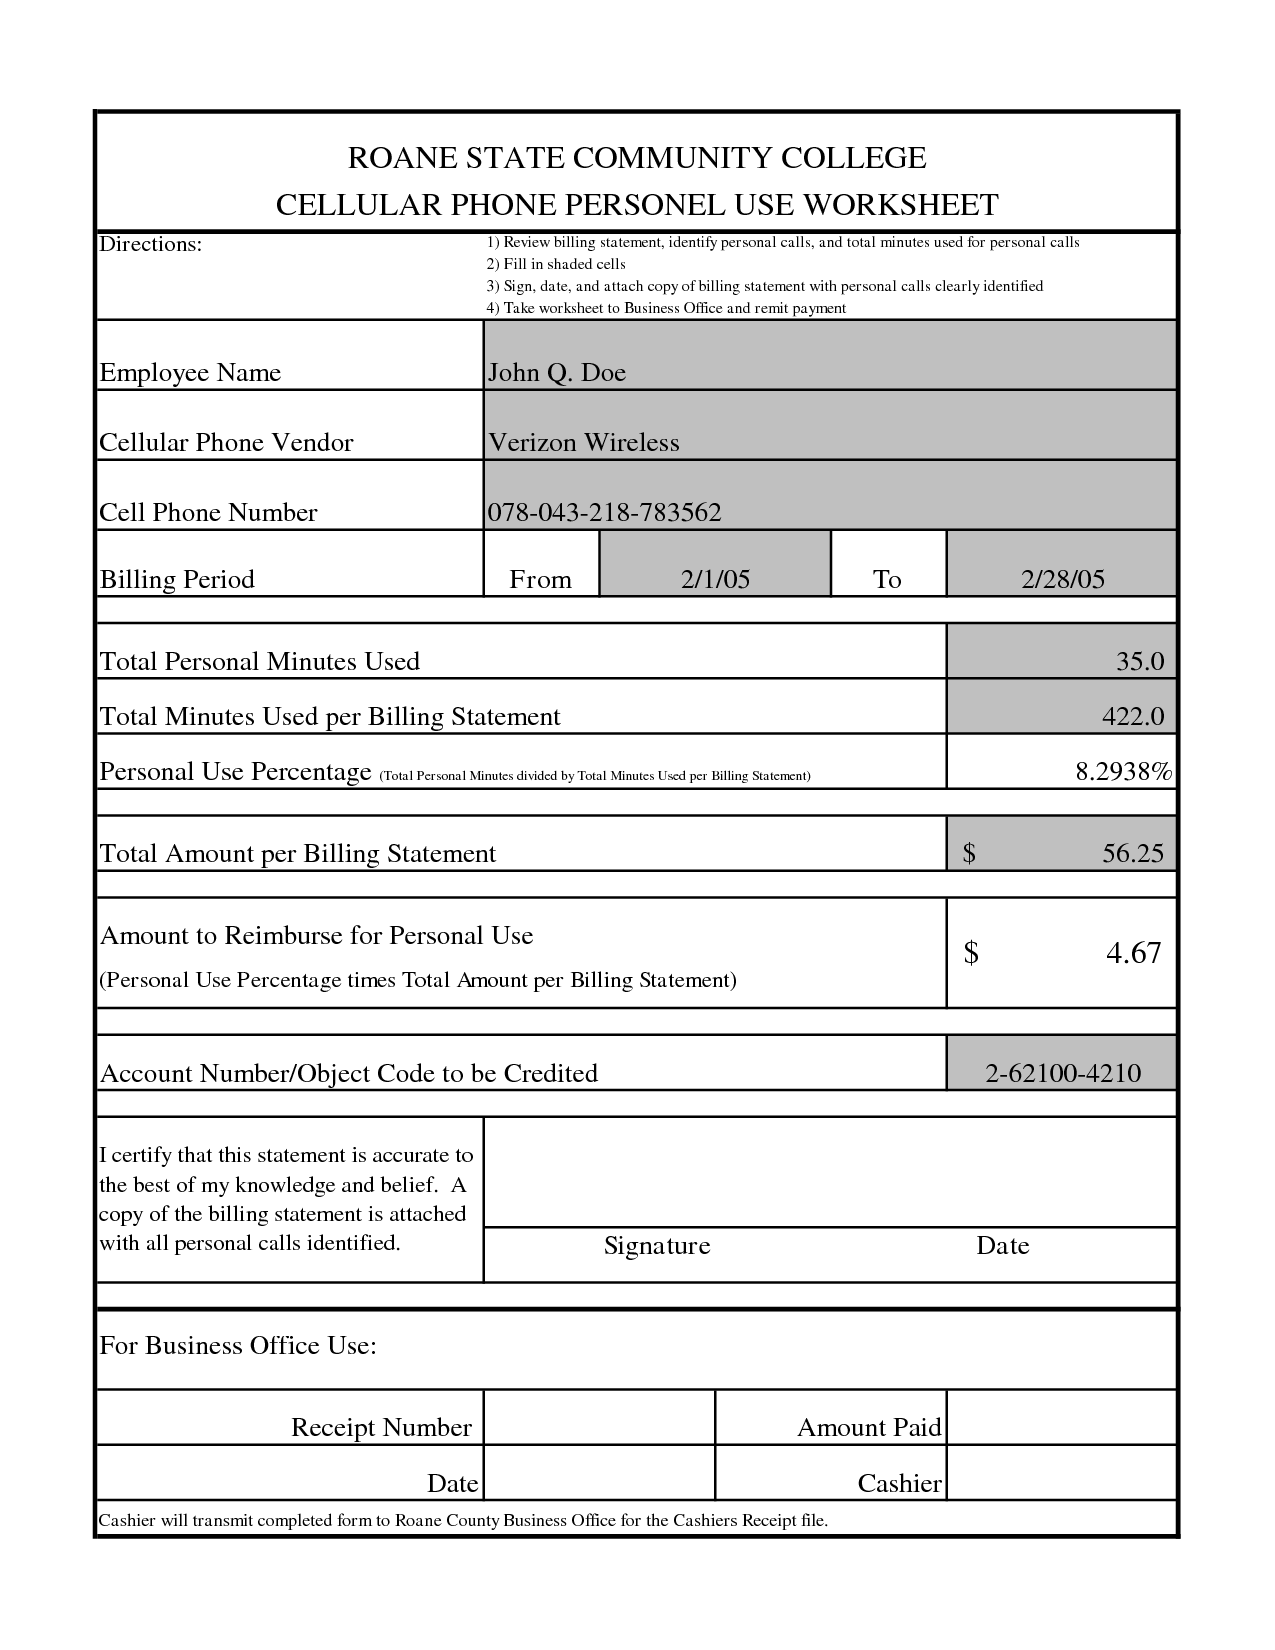 11 Best Images Of Cell Phone Worksheet